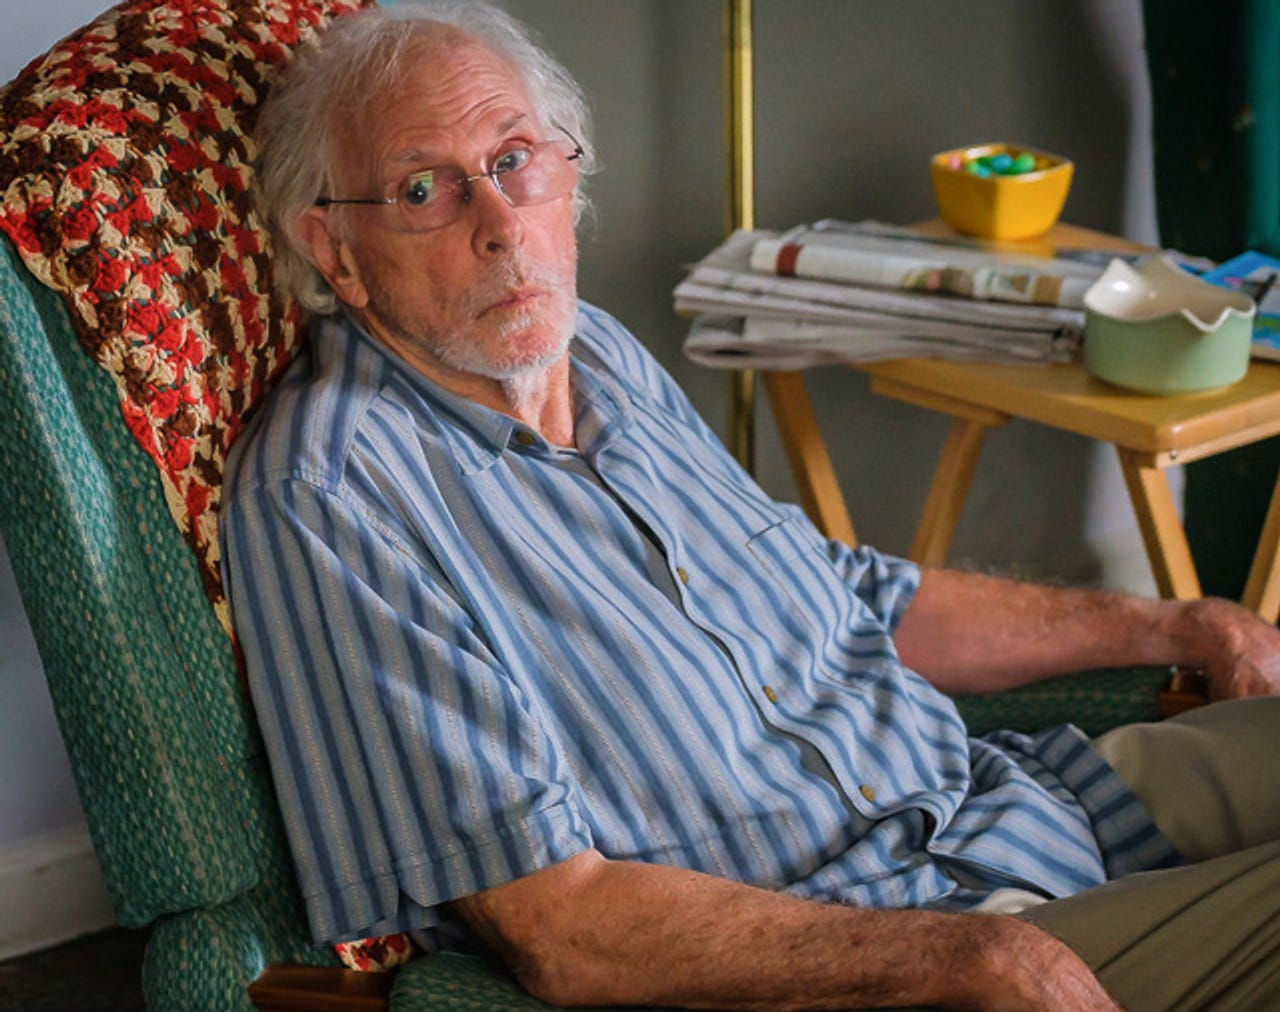 Bruce Dern in The Peanut Butter Falcon (2019)